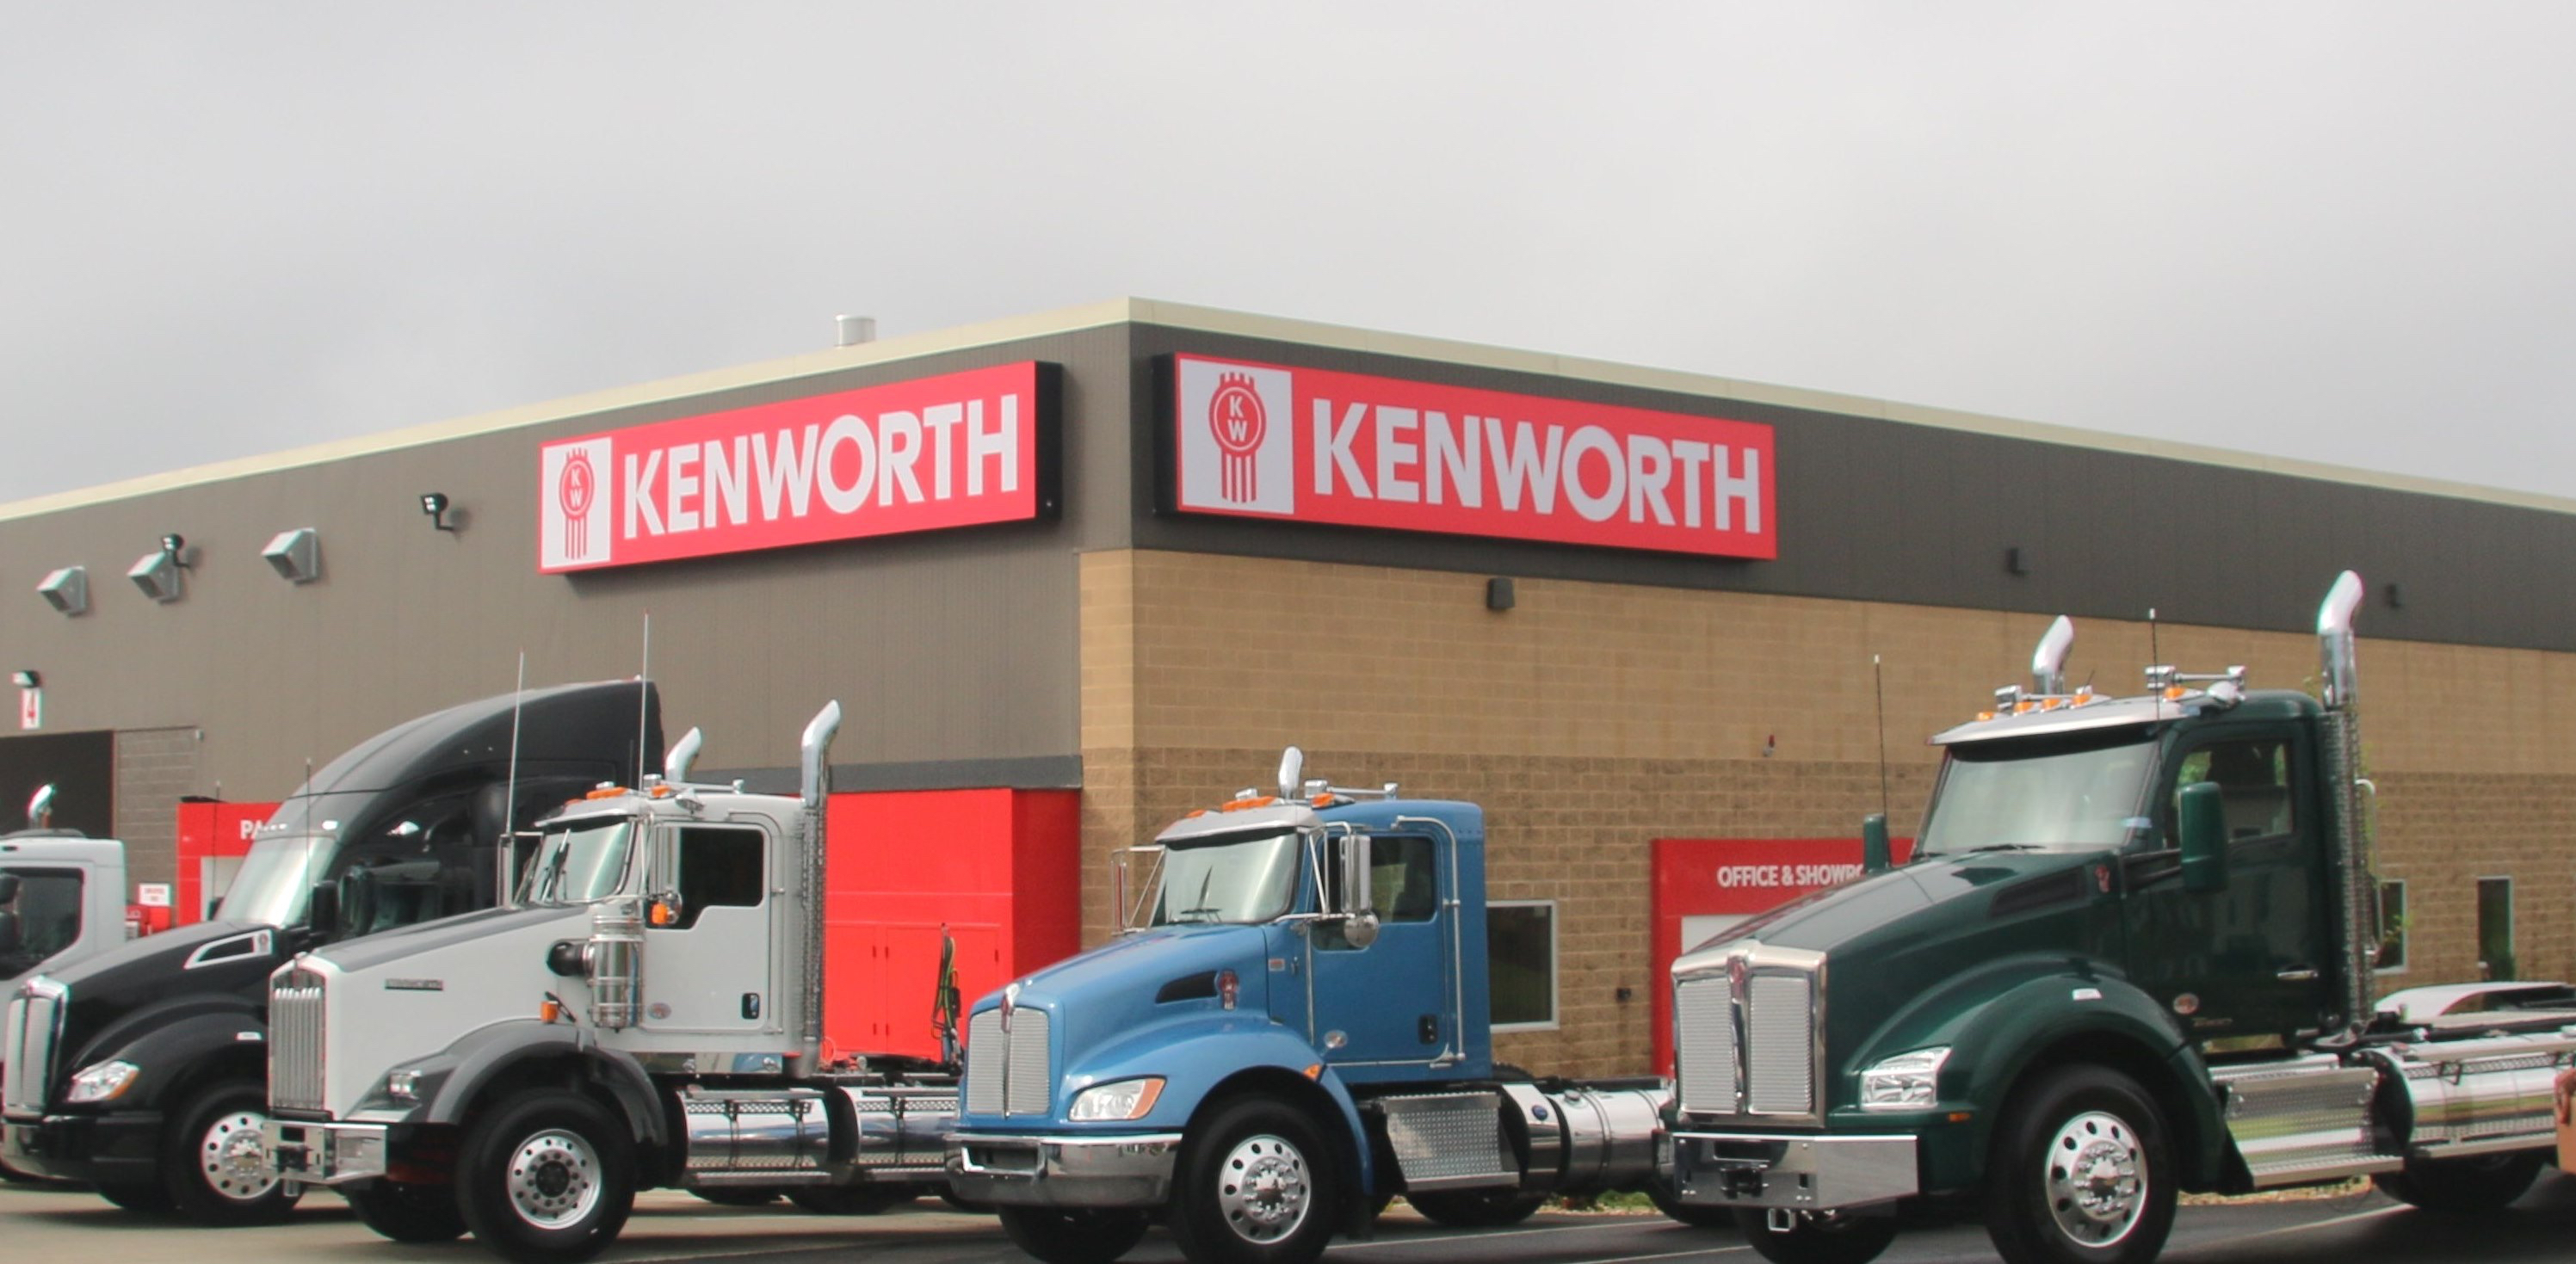 Kenworth Northeast Group Relocates South Boston Dealership to Full